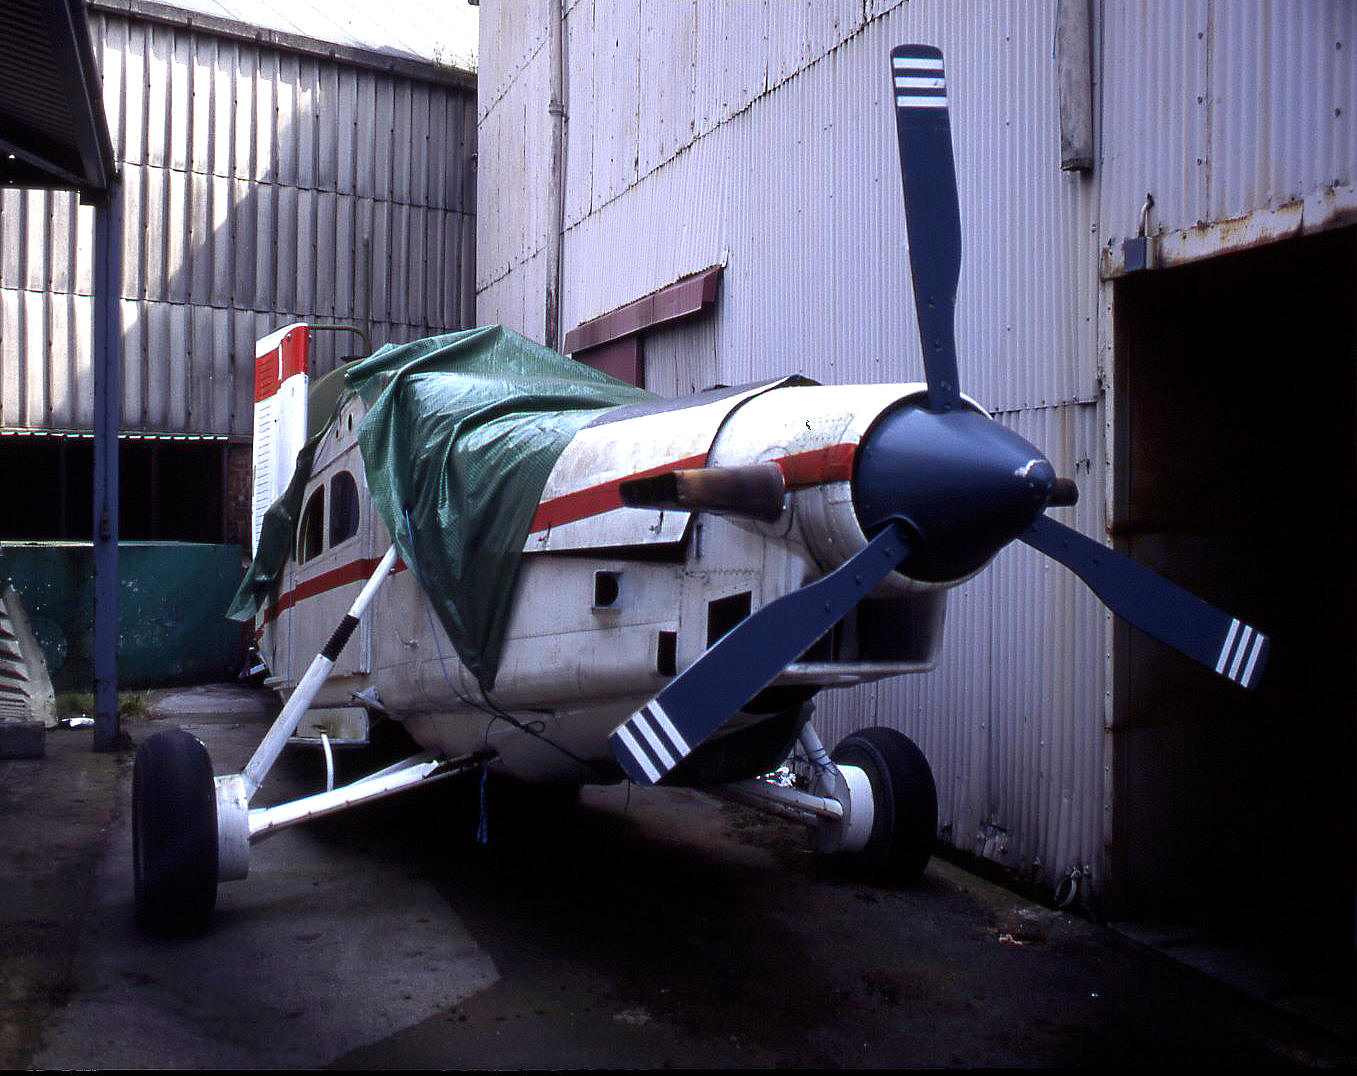 A Pilatus P.6 Porter featured in&nbsp;the James Bond movie<em> <strong>Goldeneye</strong></em>